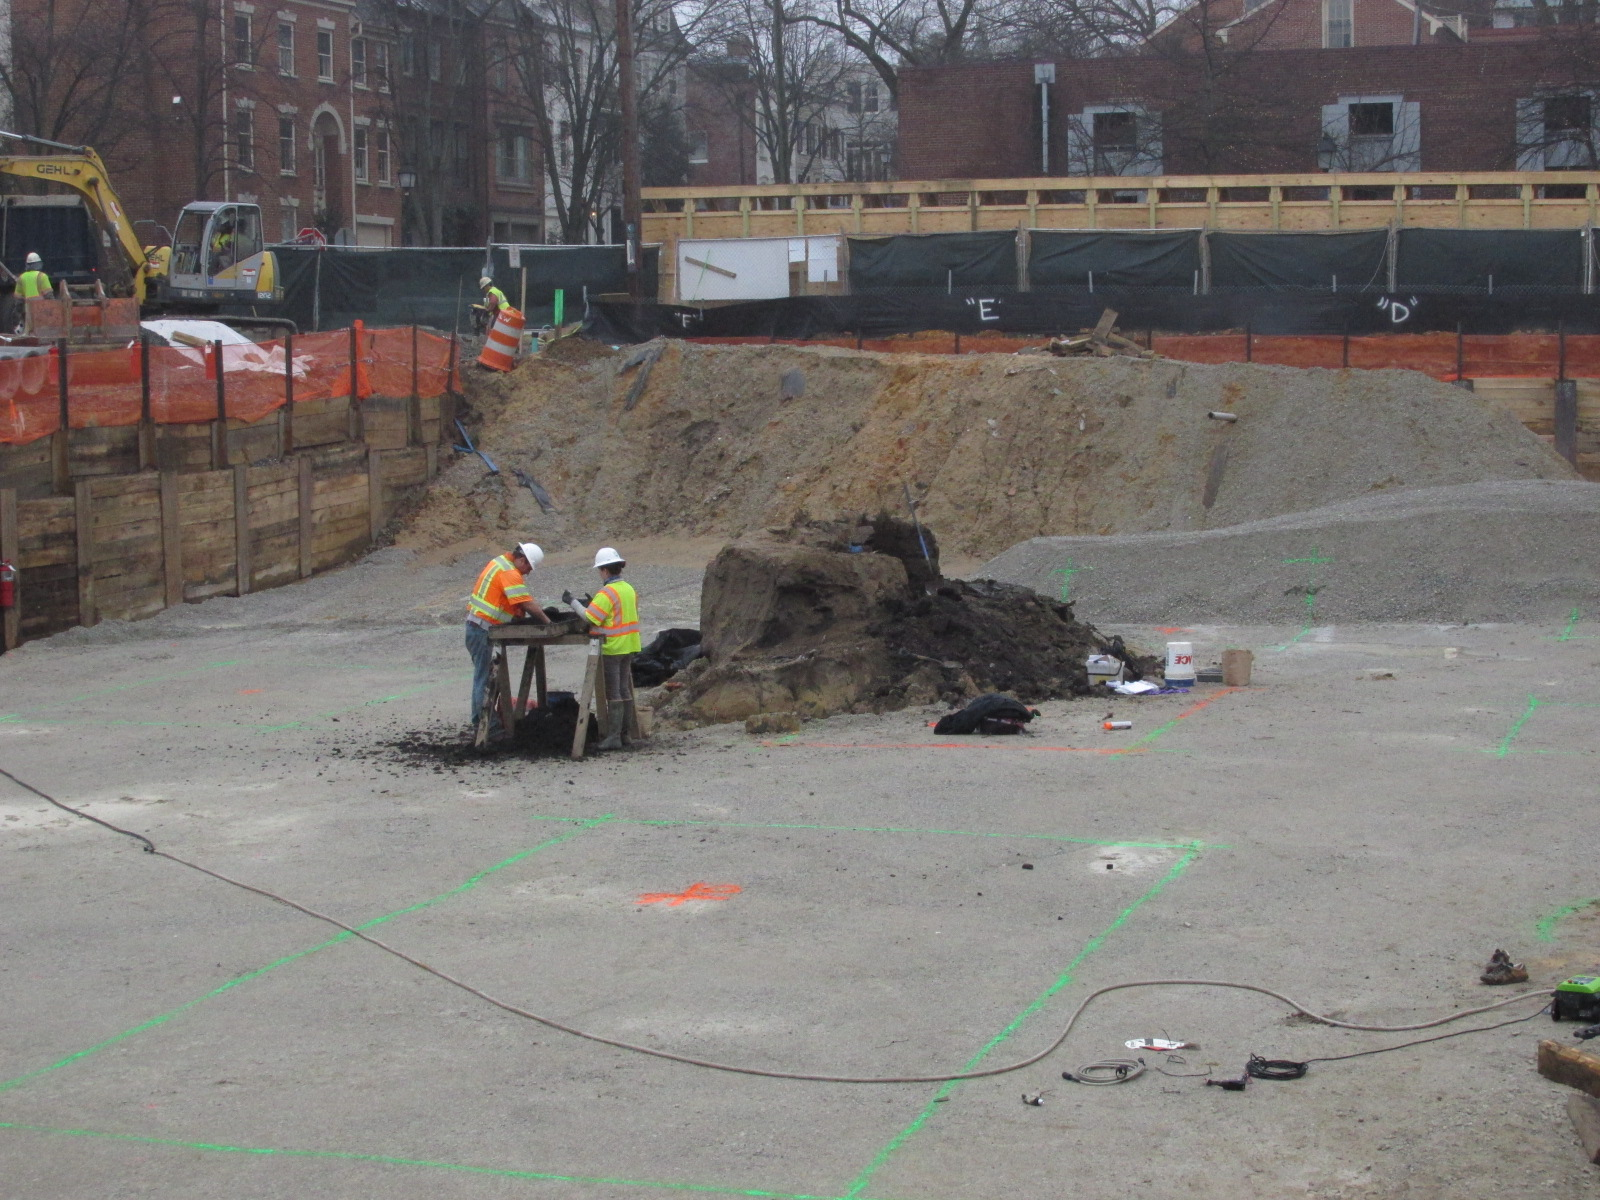 Our archeologist excavate the 18th-century privy thought to be associated with the previously identified the Carlyle warehouse.